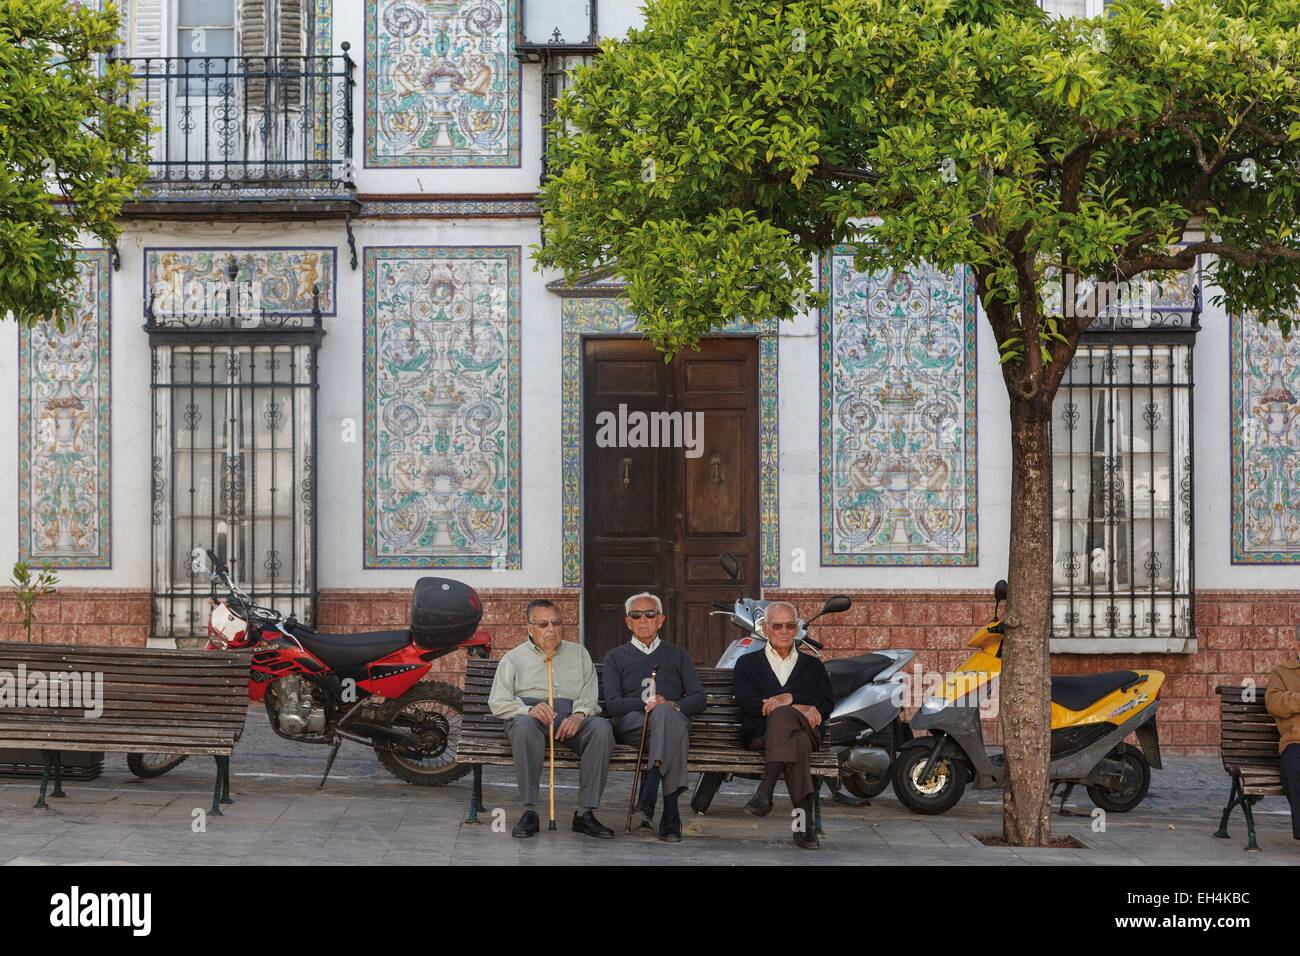 Spain, Andalusia, Cadix, Ubrique, older men sitting on a bench in the public square in front of a house decorated - Stock Image